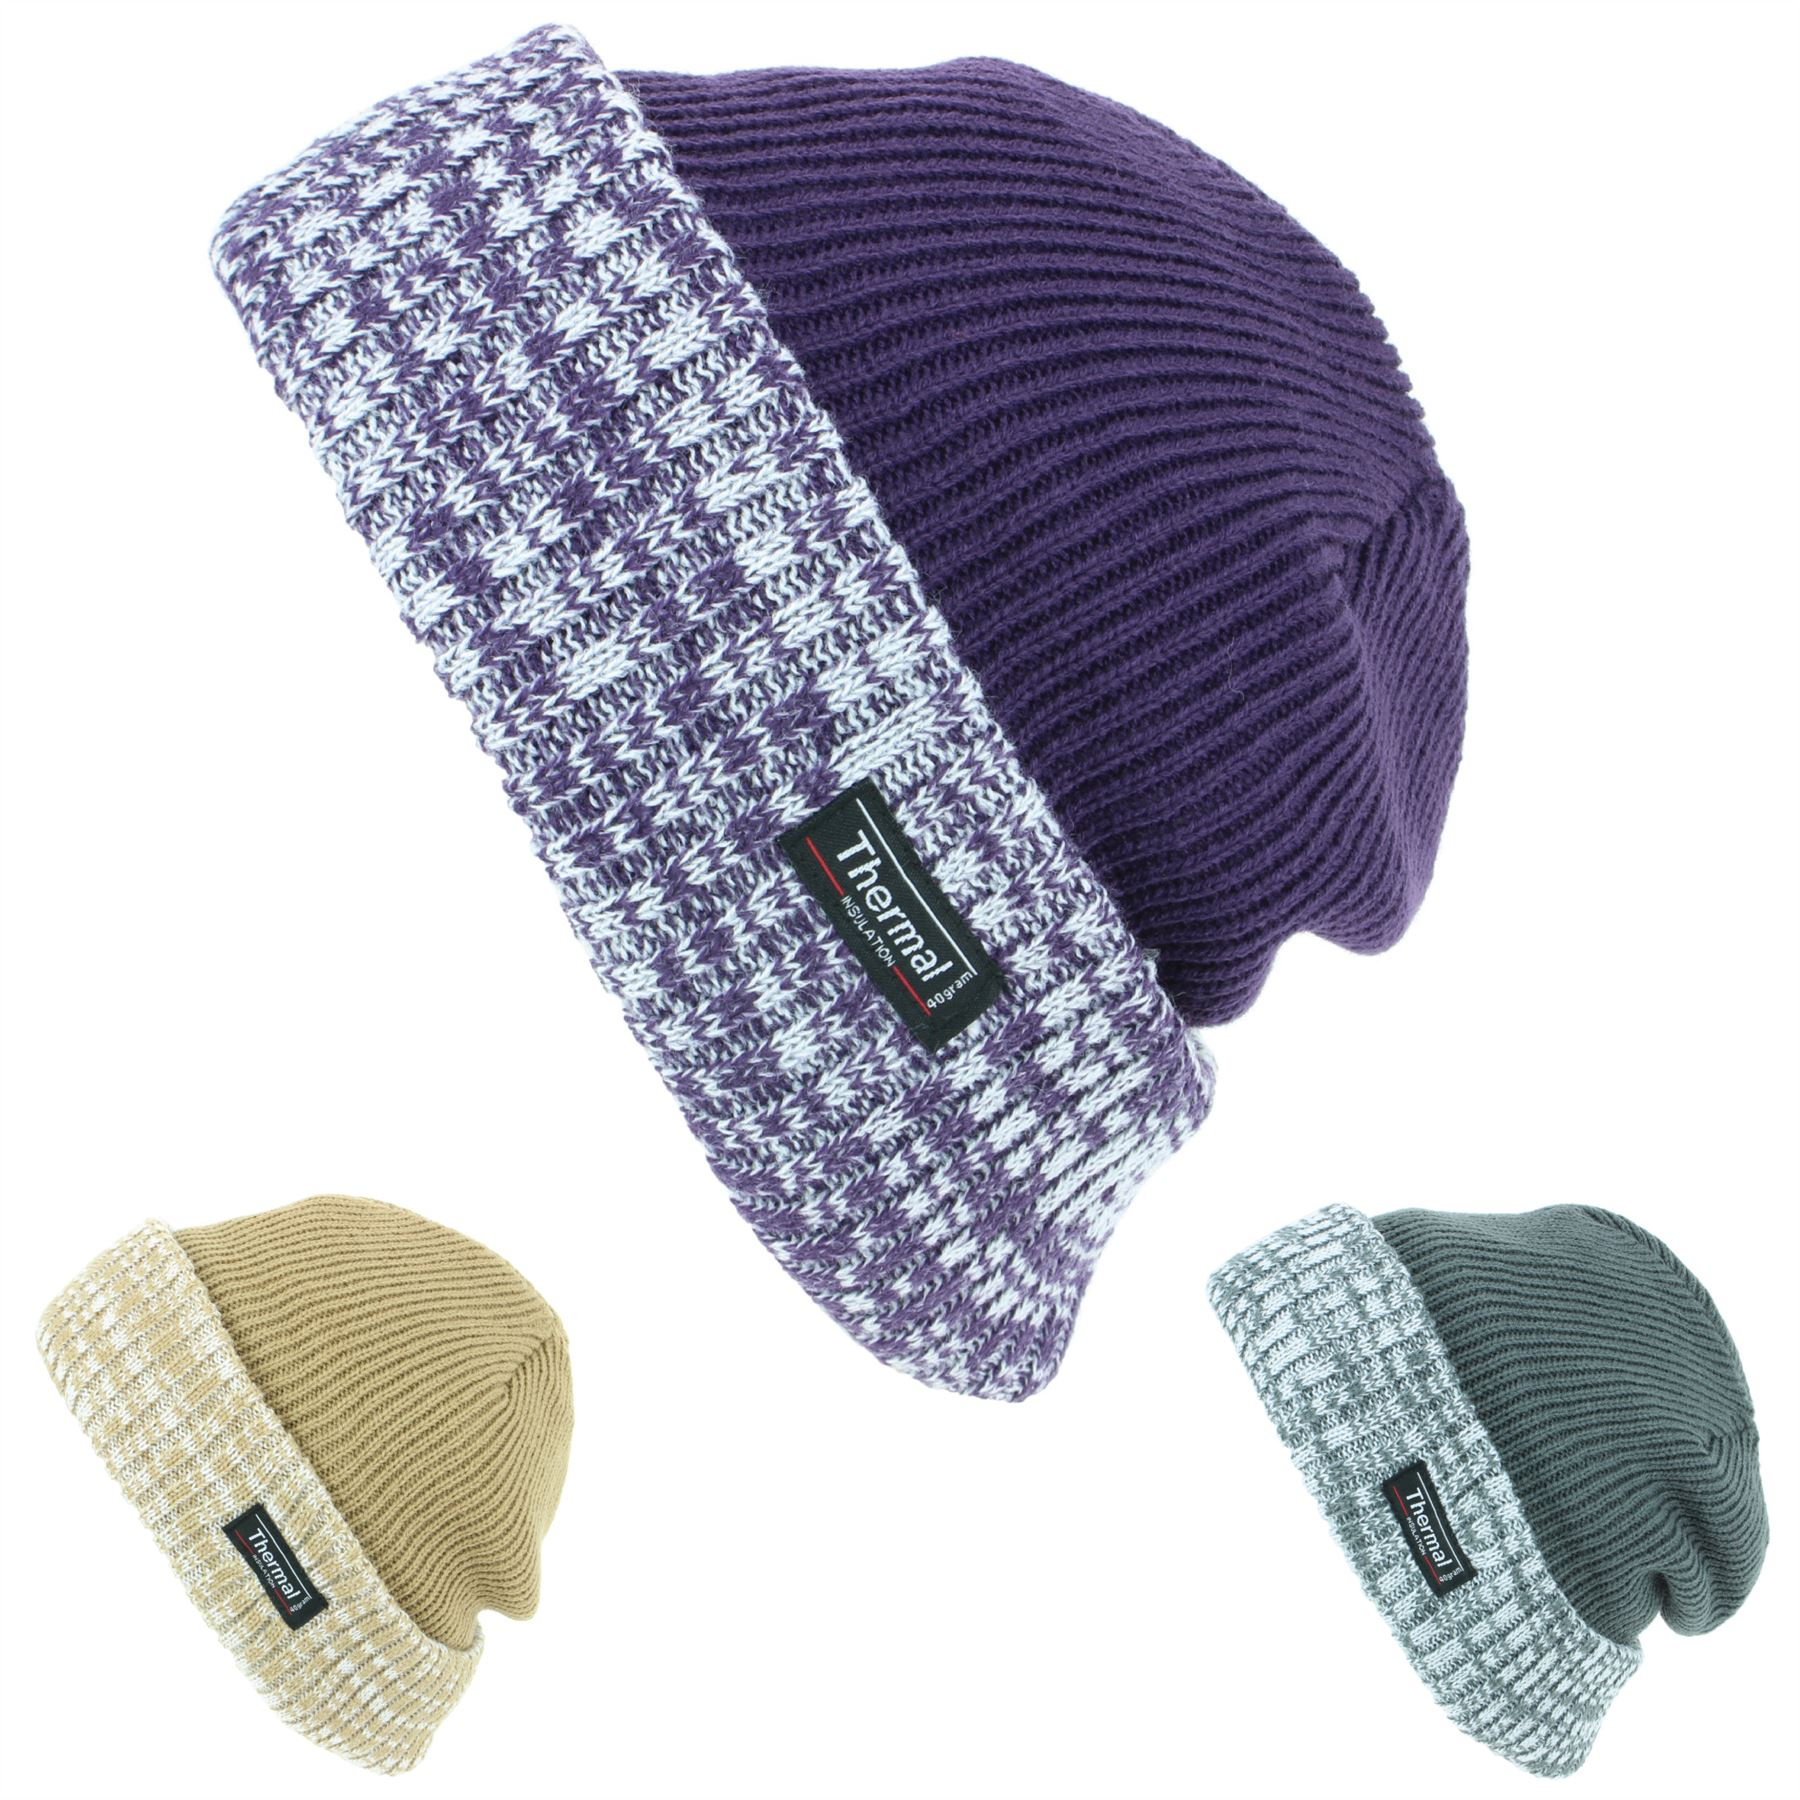 9f2857d345670 Ribbed knit beanie hat with a turned up marl brim and 3M Thinsulate thermal  lining.